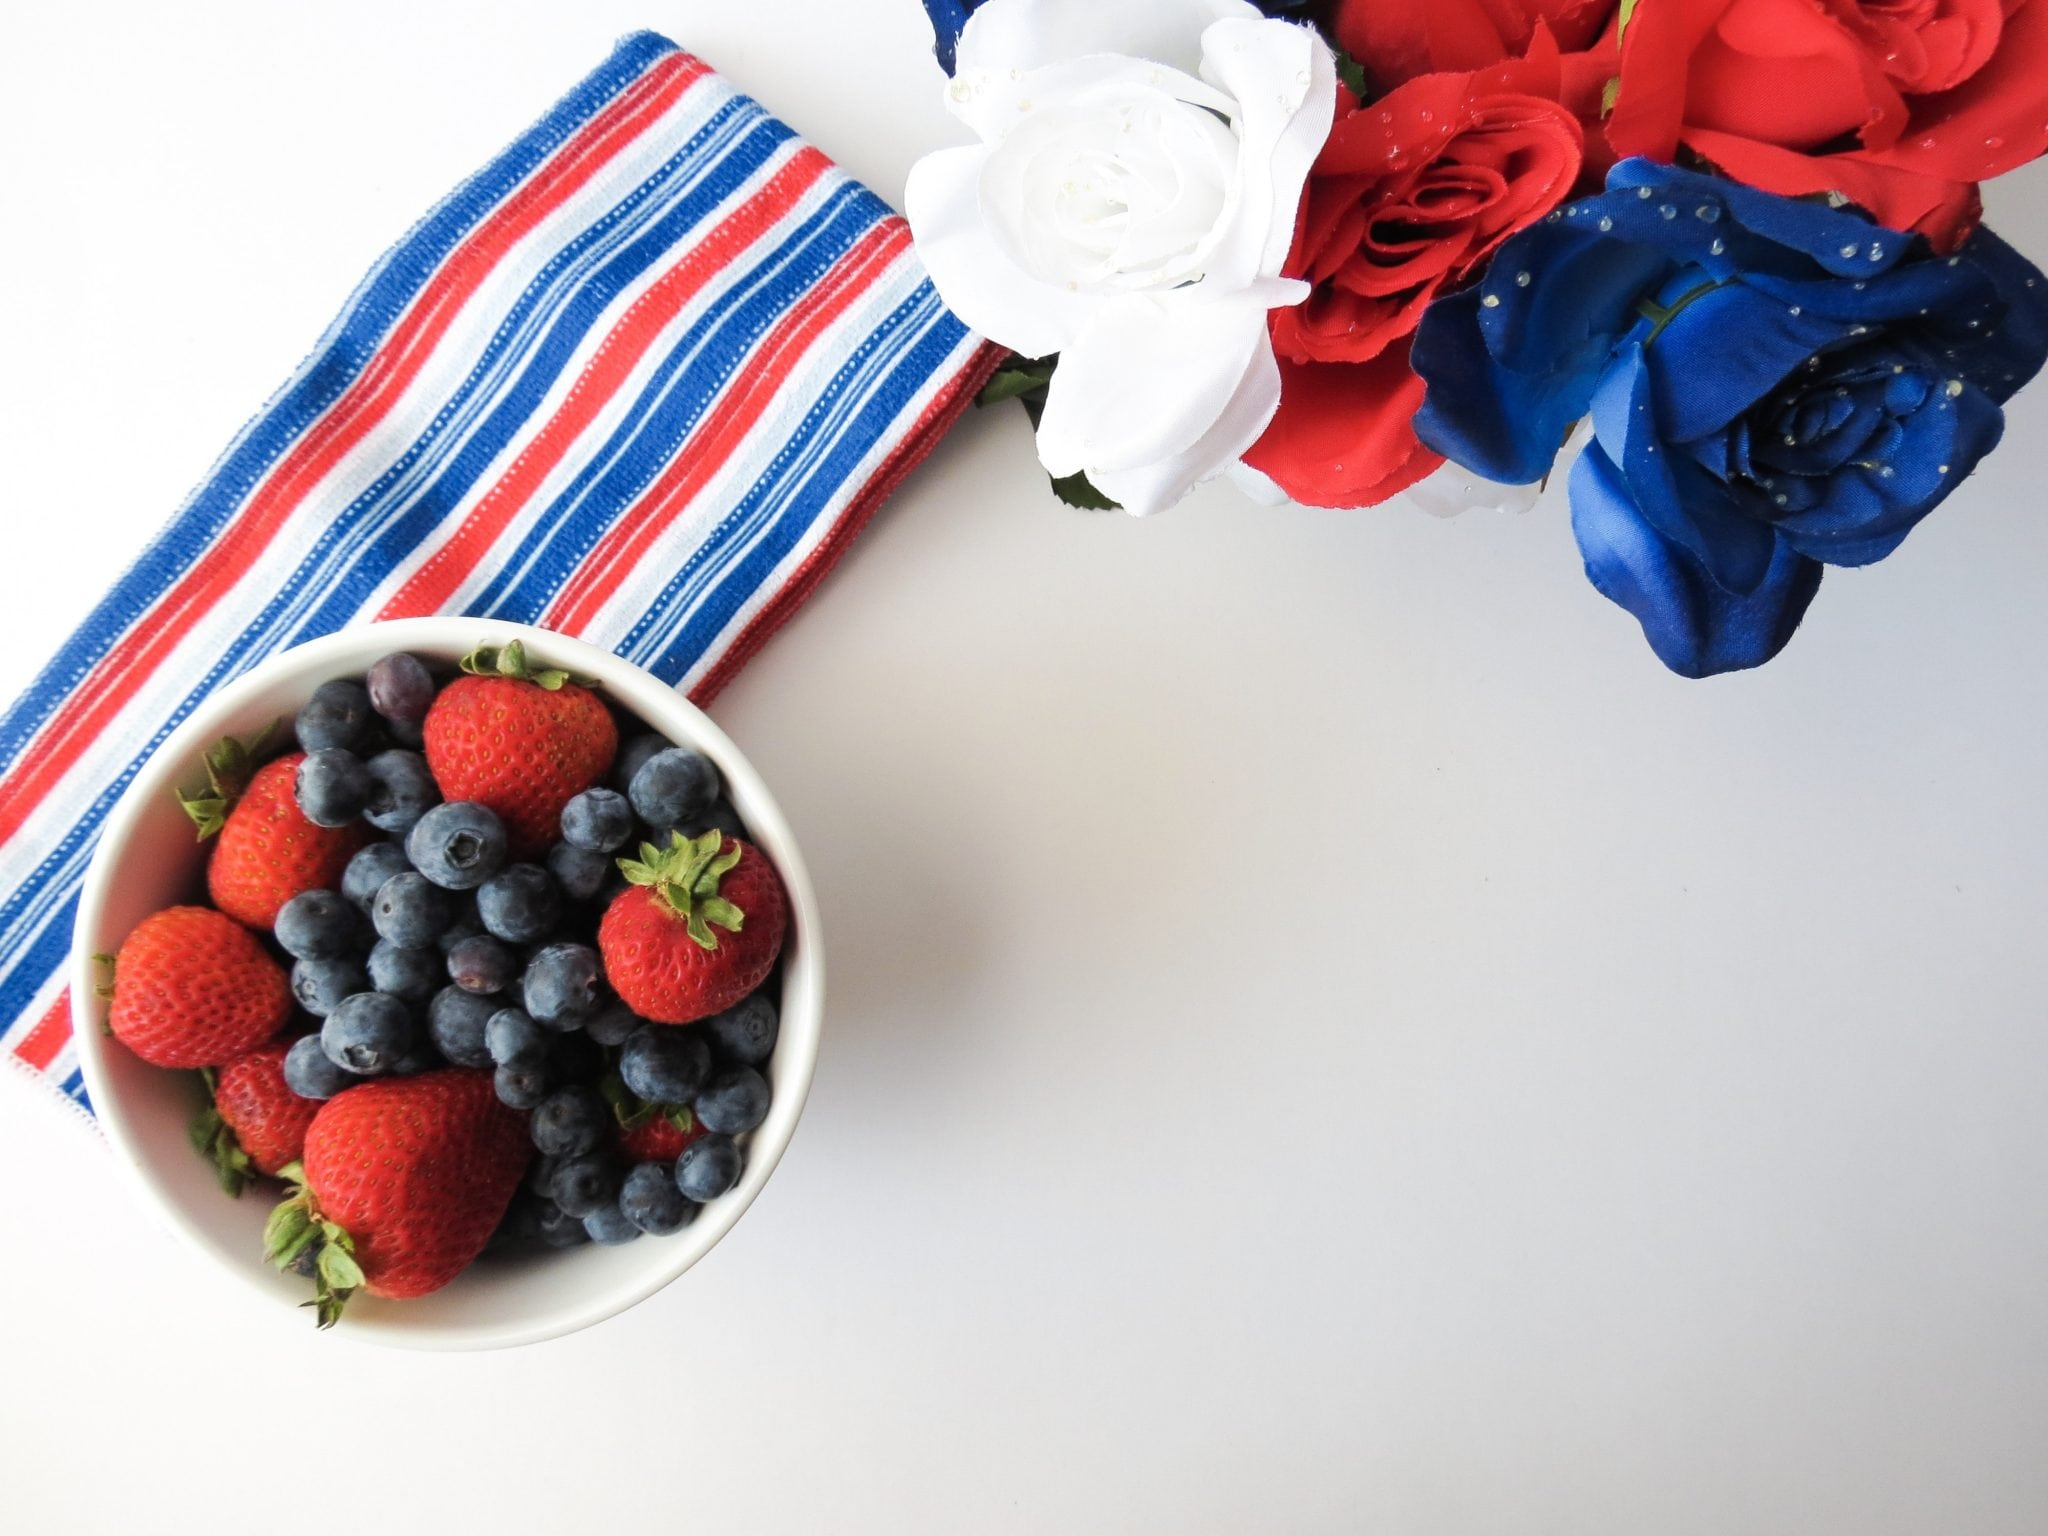 2 Seasonal Cocktail Recipes to Celebrate Independence Day in Your Restaurant